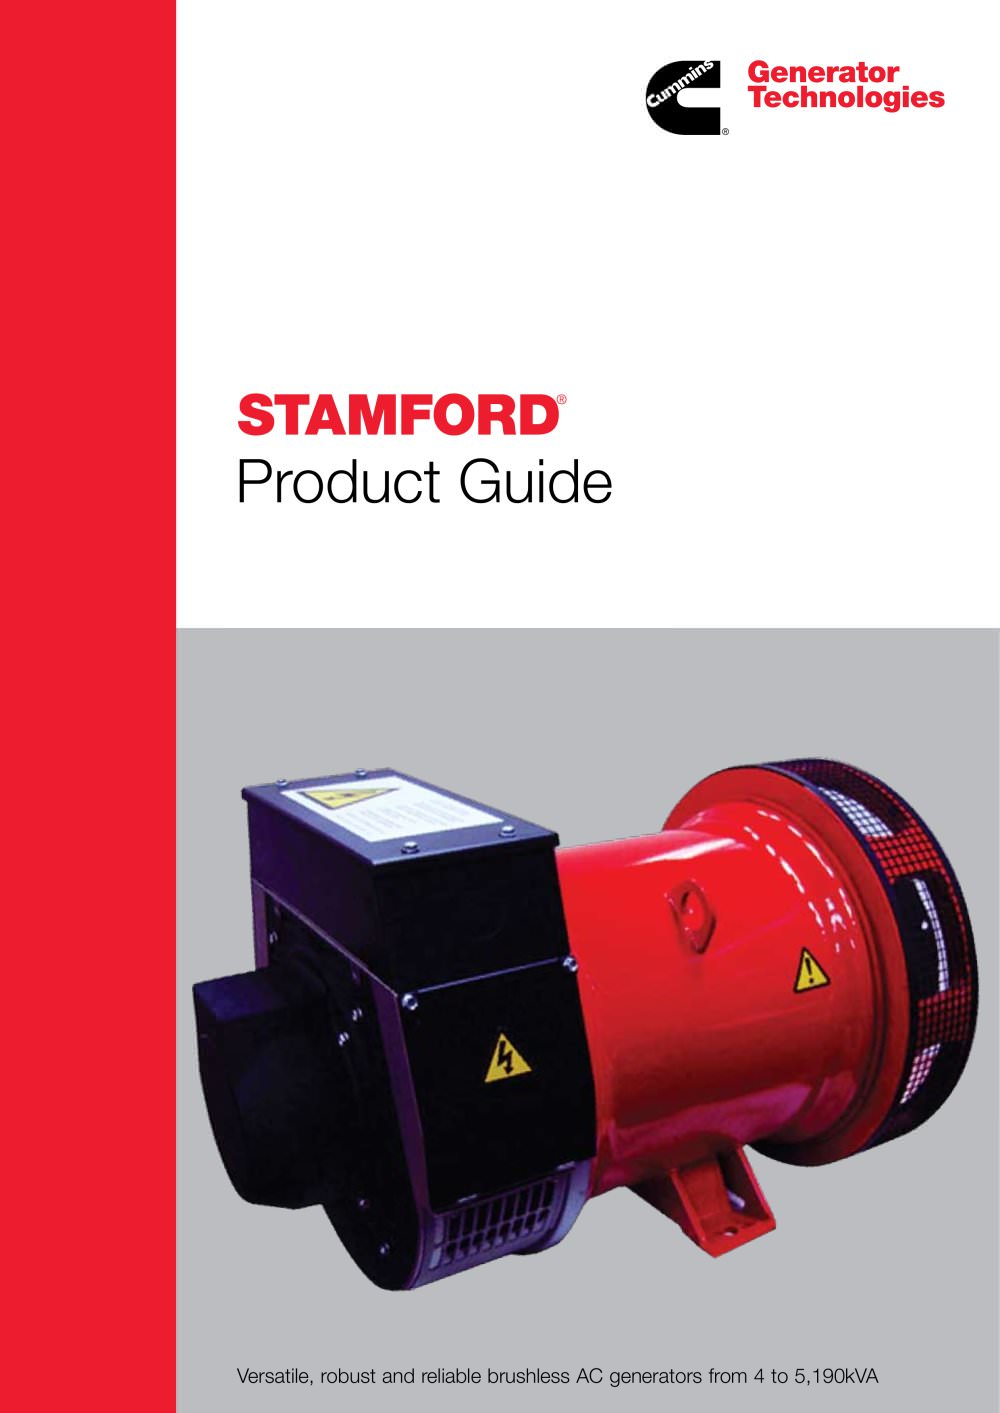 stamford product guide cummins generator technologies pdfstamford product guide 1 16 pages